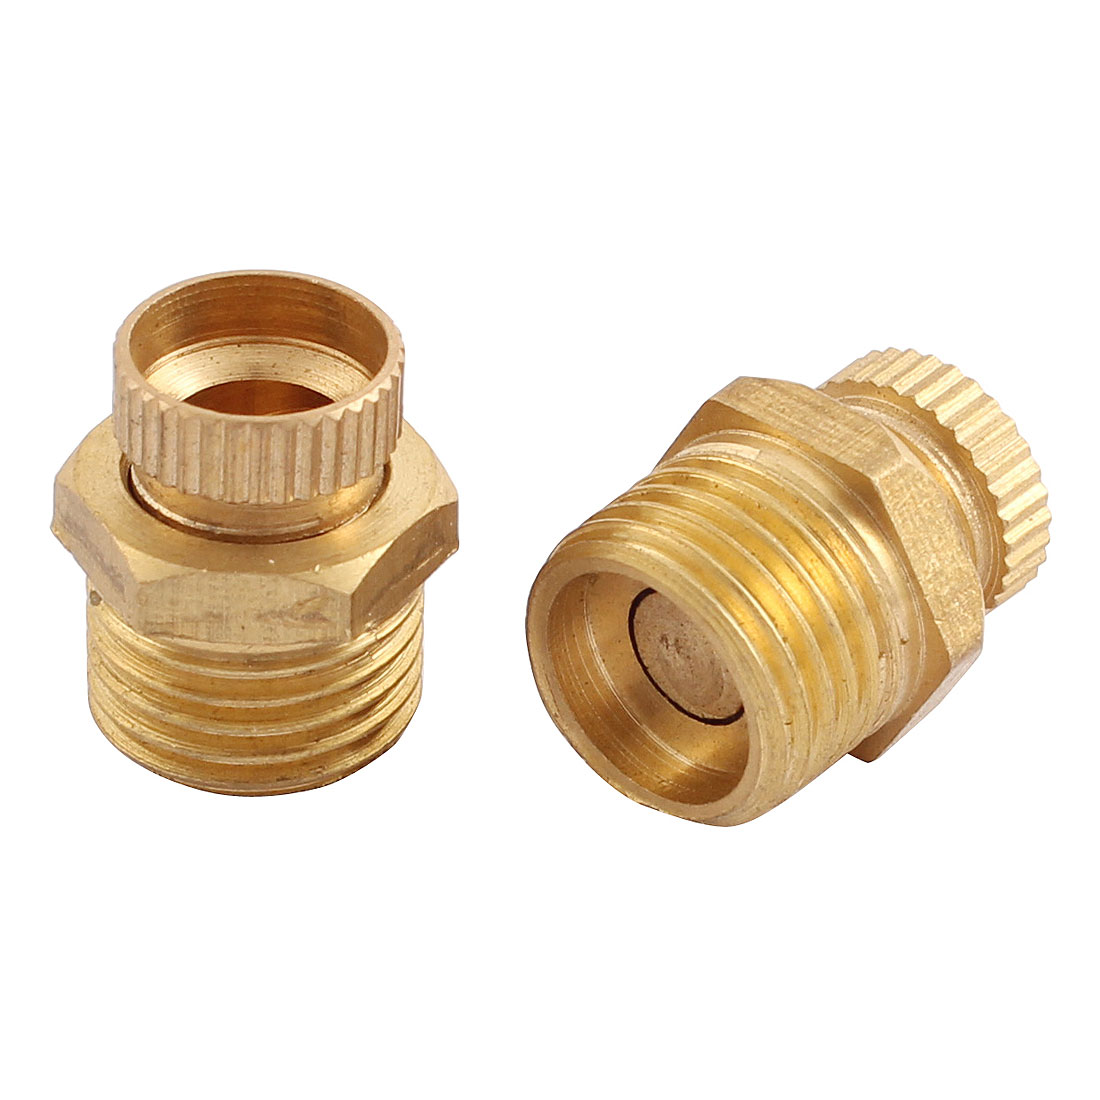 Air Compressor Part 13mm Male Thread Dia Security Water Drain Valve Brass Tone 2 Pcs